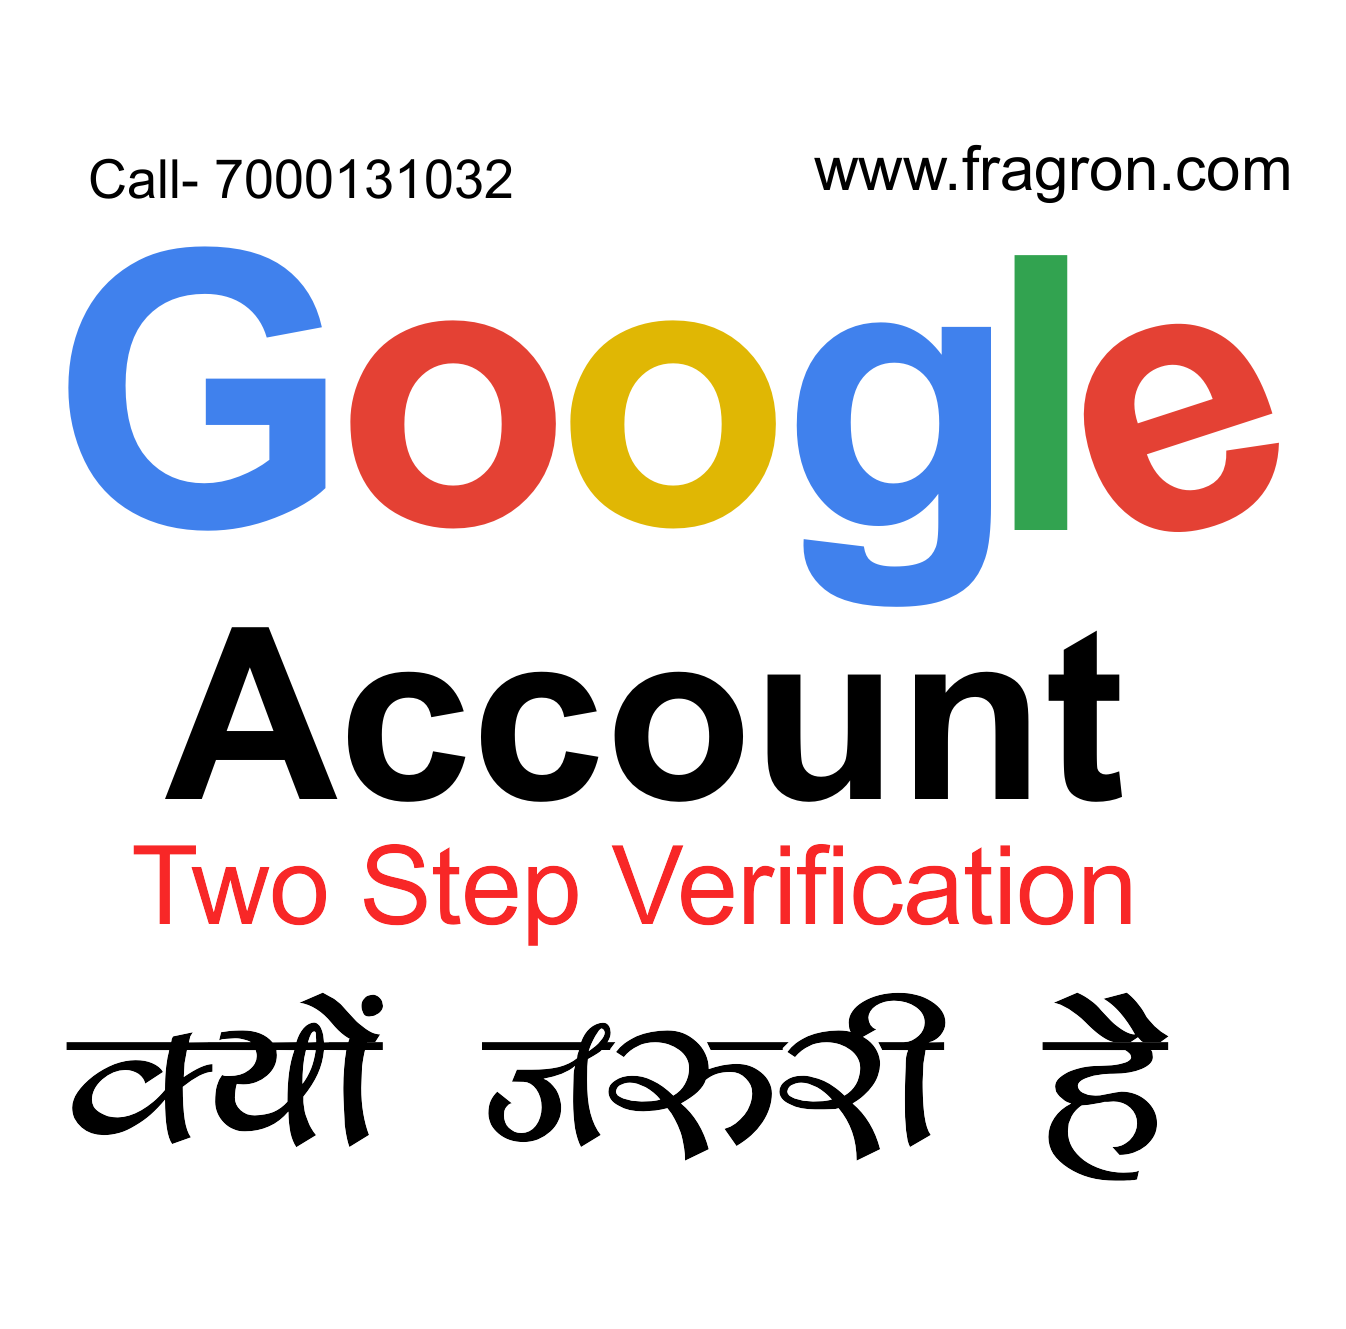 Gmail 2 step verification kyu jaruri hai ?